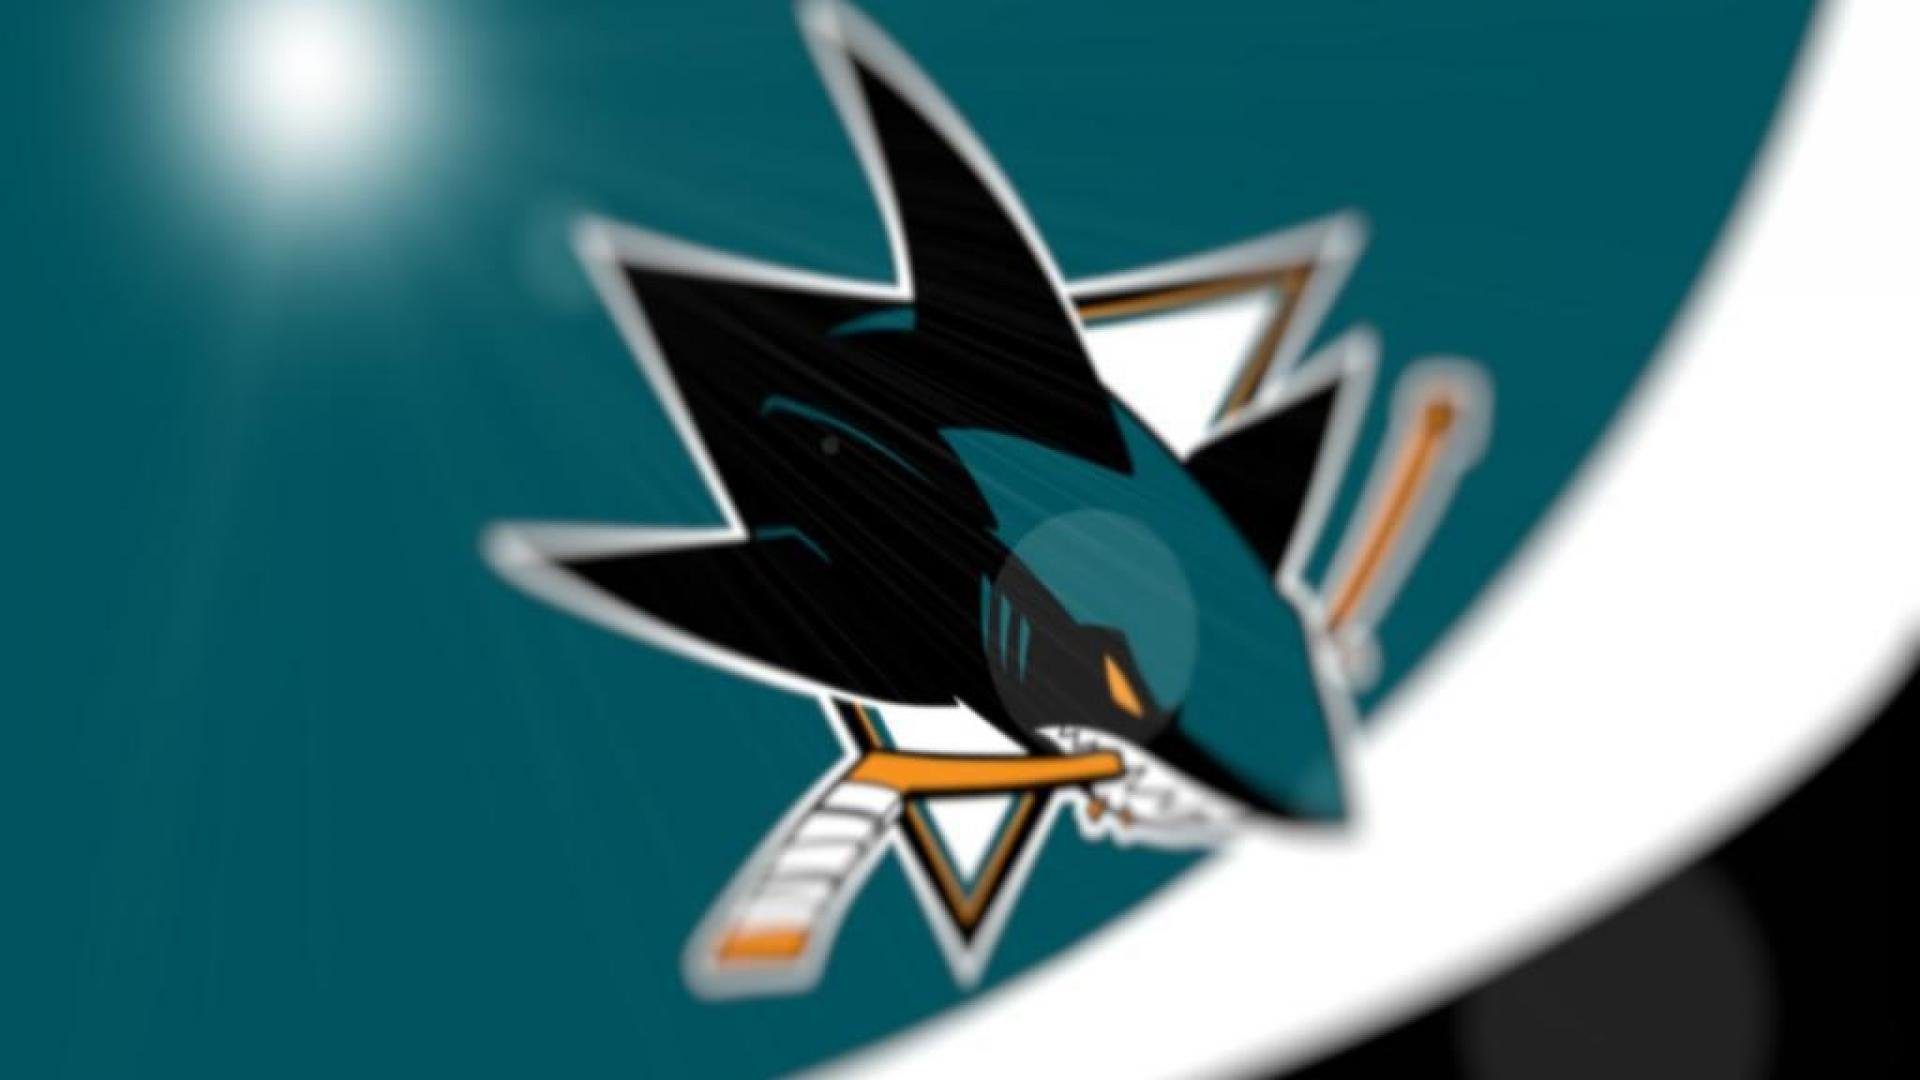 48 San Jose Sharks Hd Wallpaper On Wallpapersafari